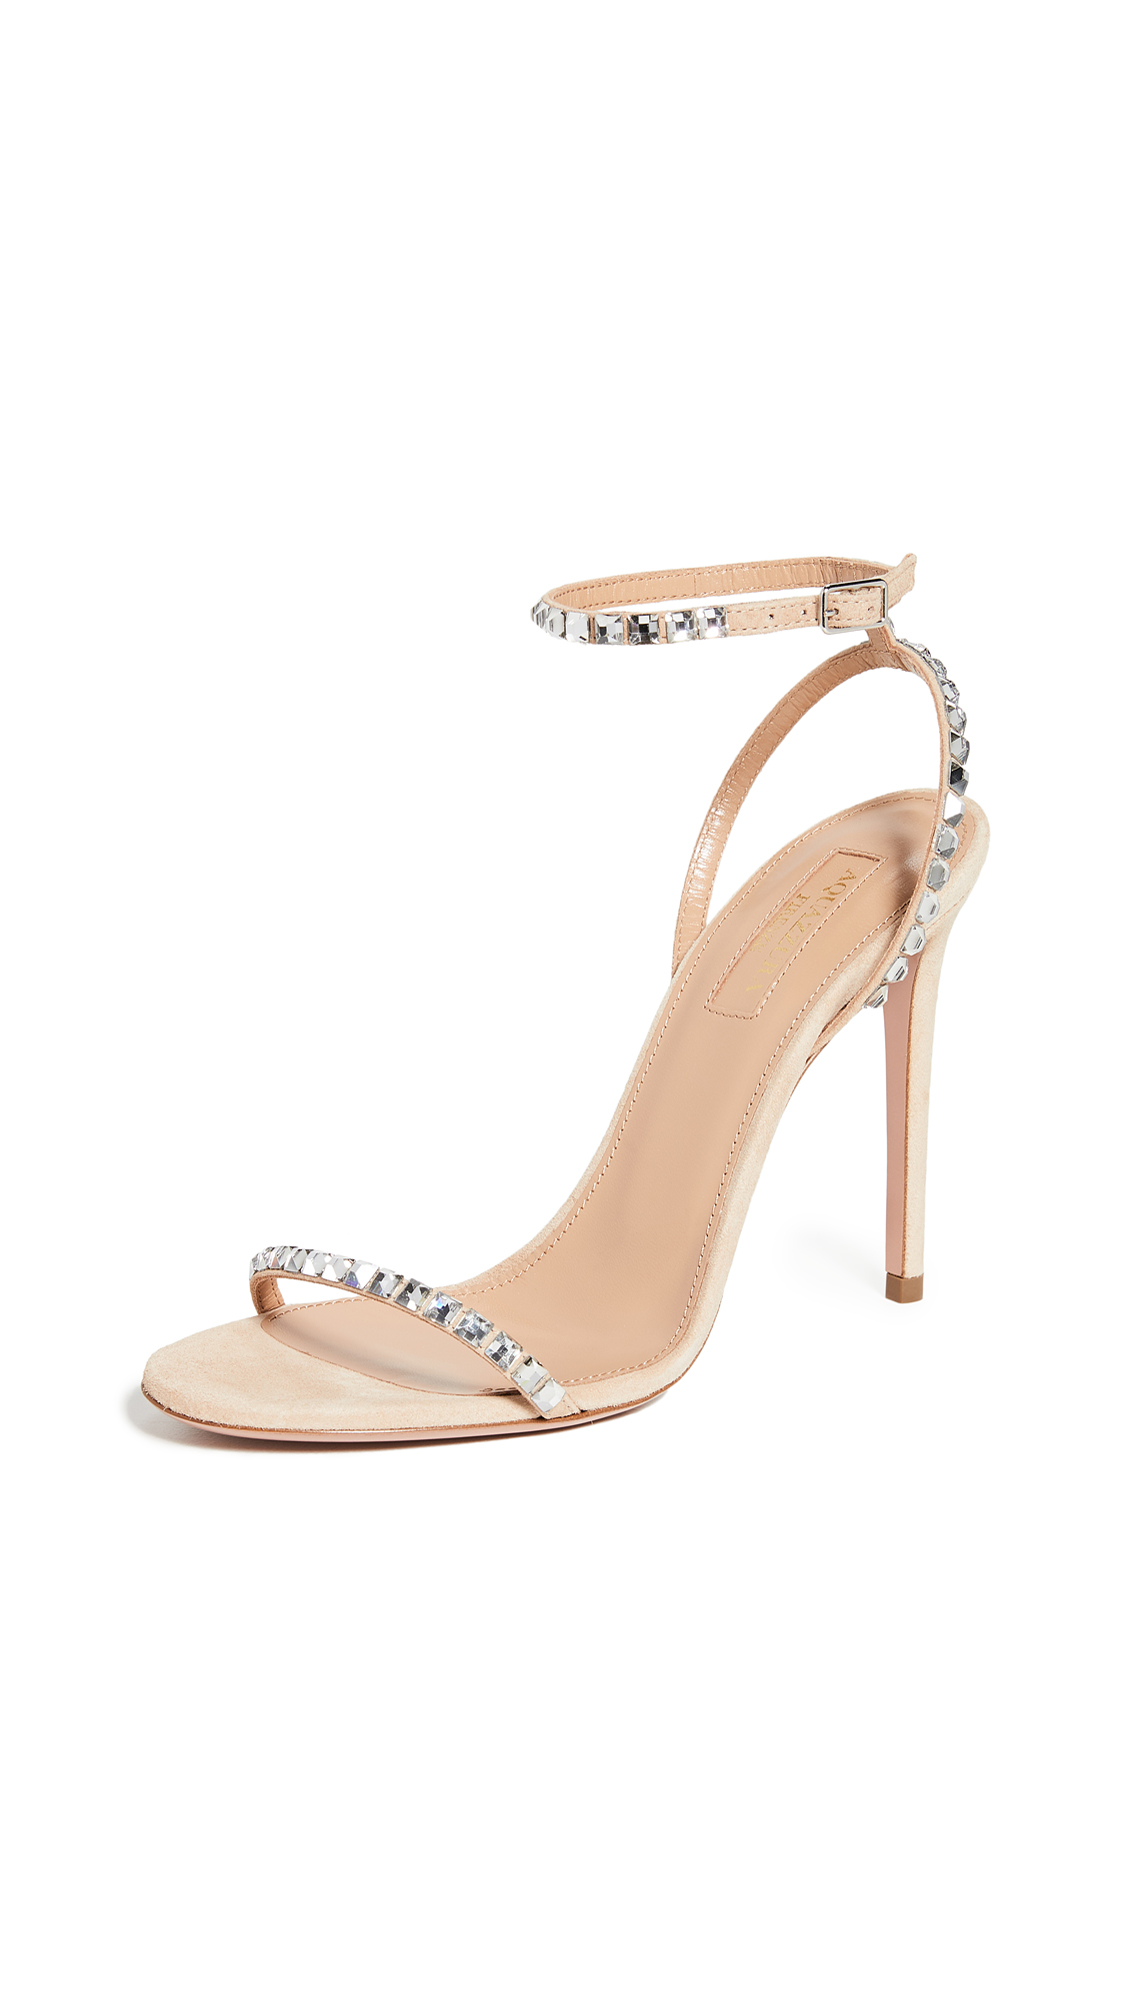 Buy Aquazzura 105mm Very Vera Sandals online, shop Aquazzura